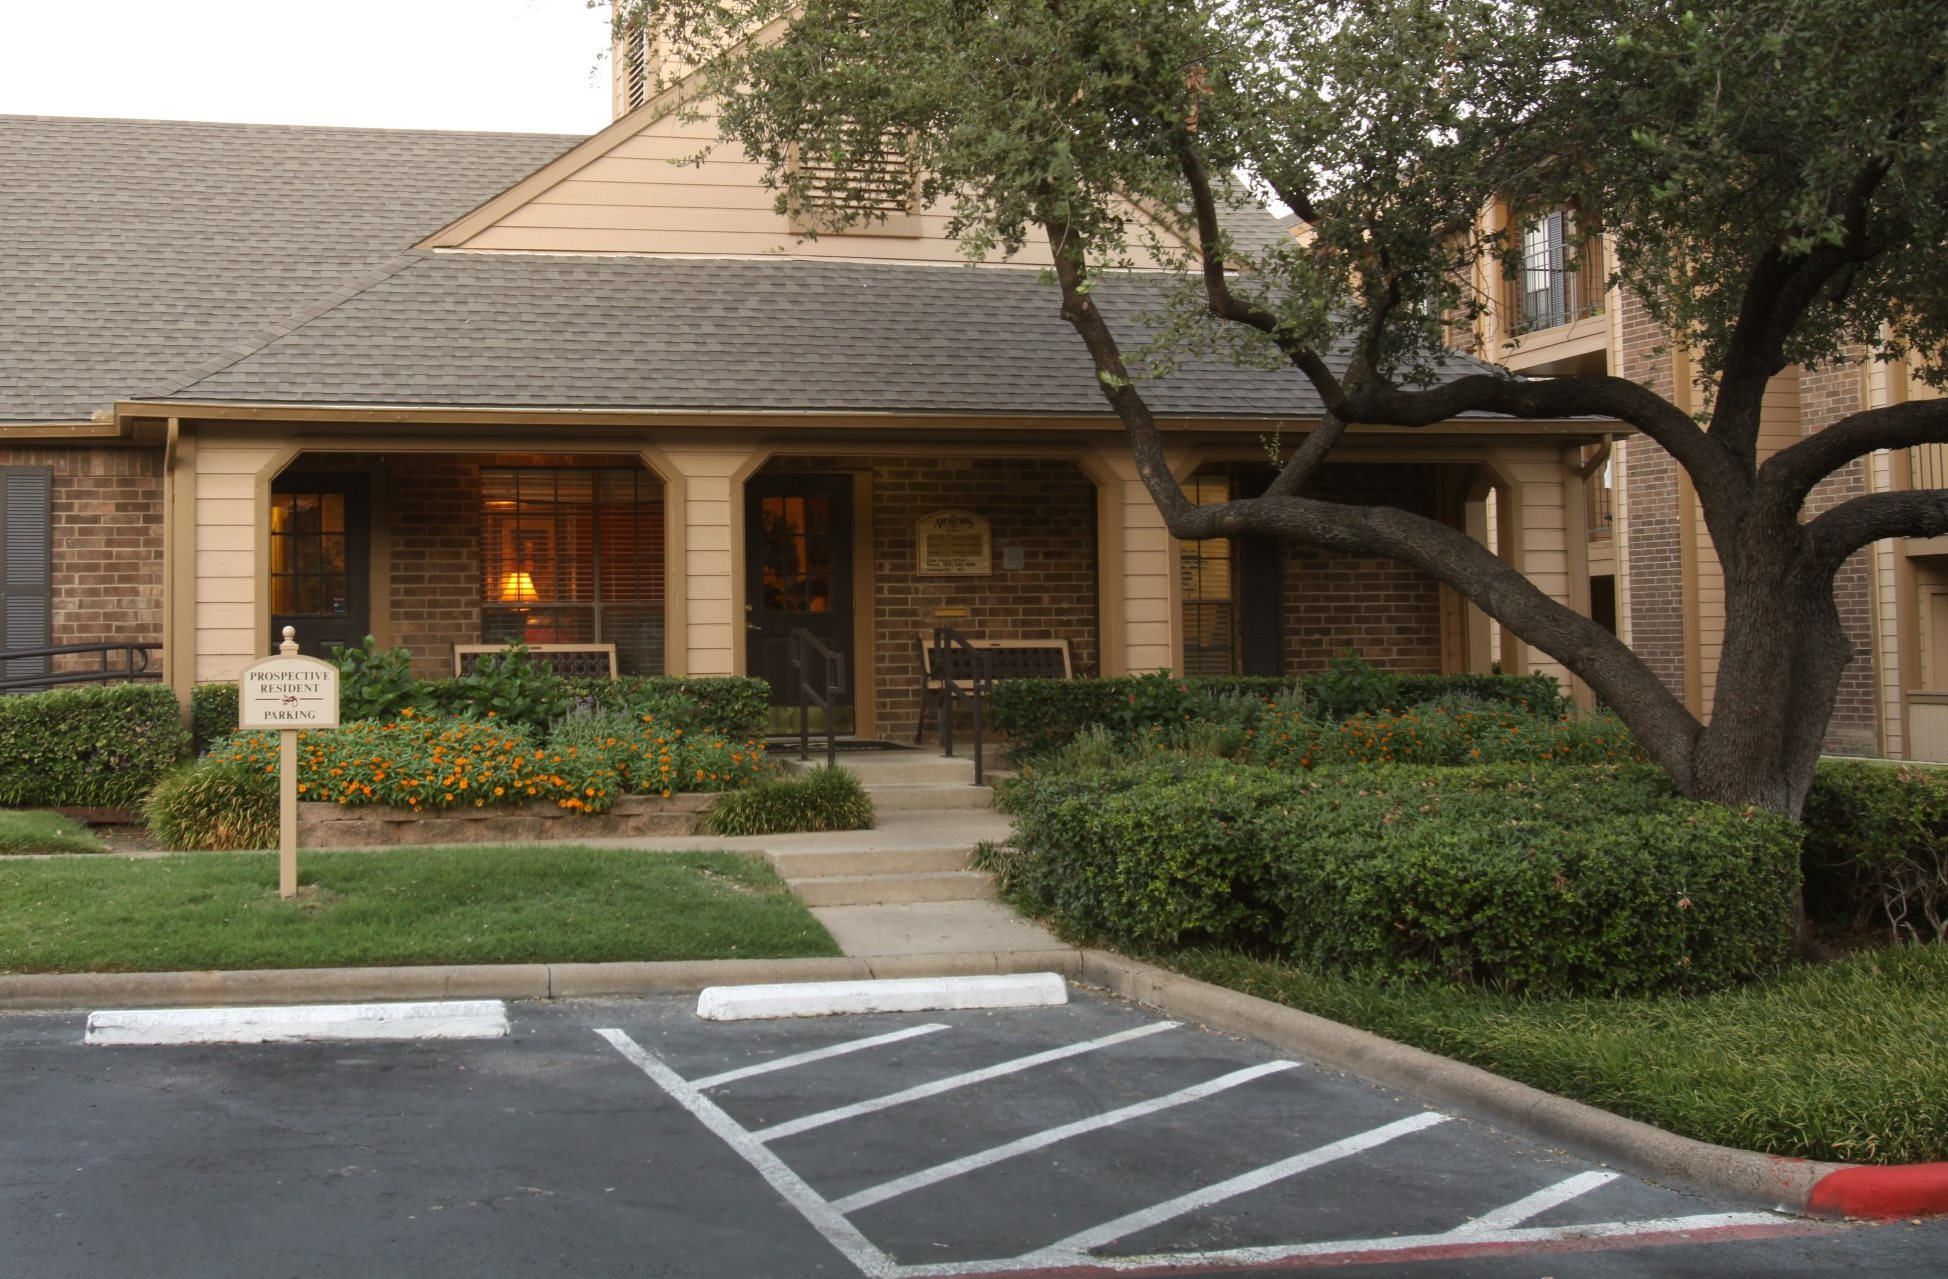 Clubhouse exterior, green trees, bushes, and parking lot